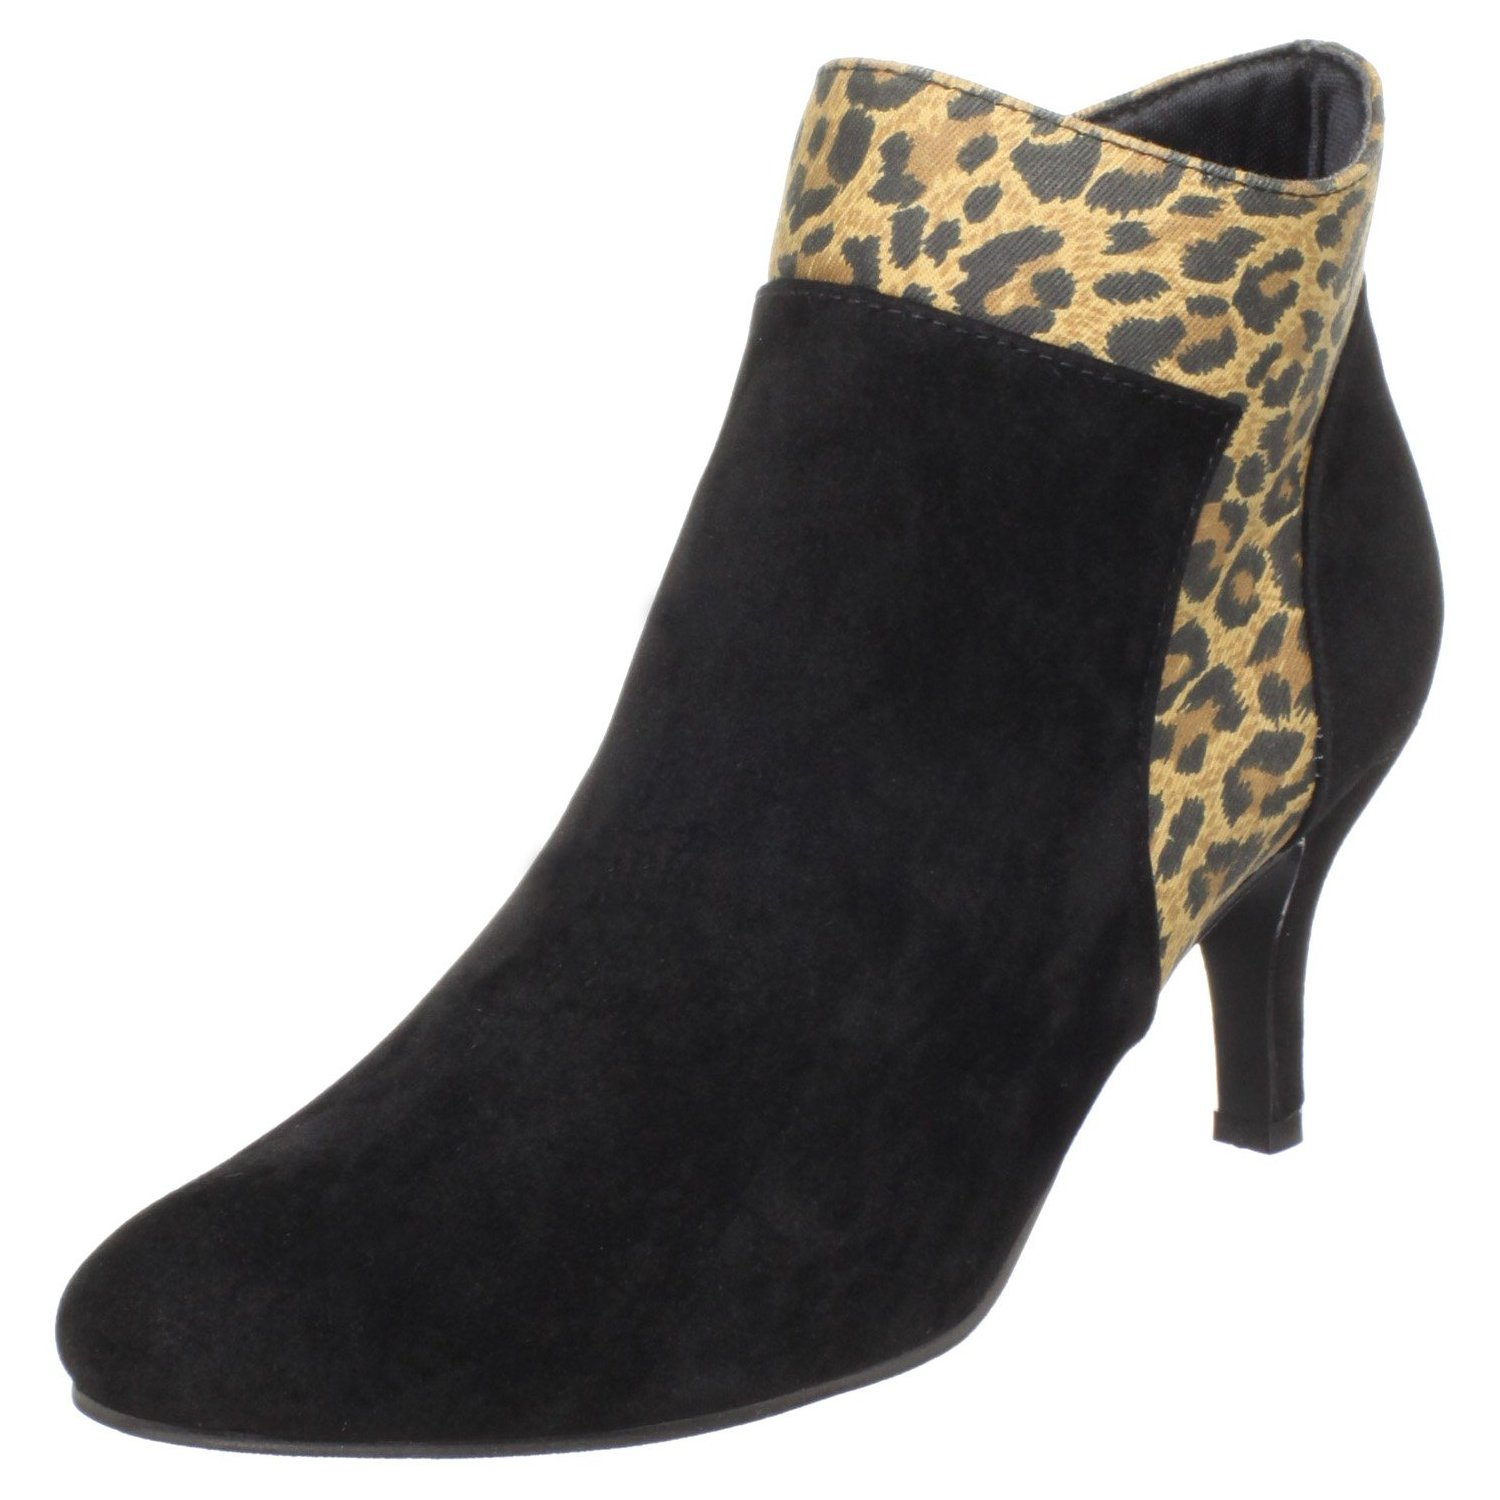 Annie Shoes Leopard Trim Women's Bliss Bootie